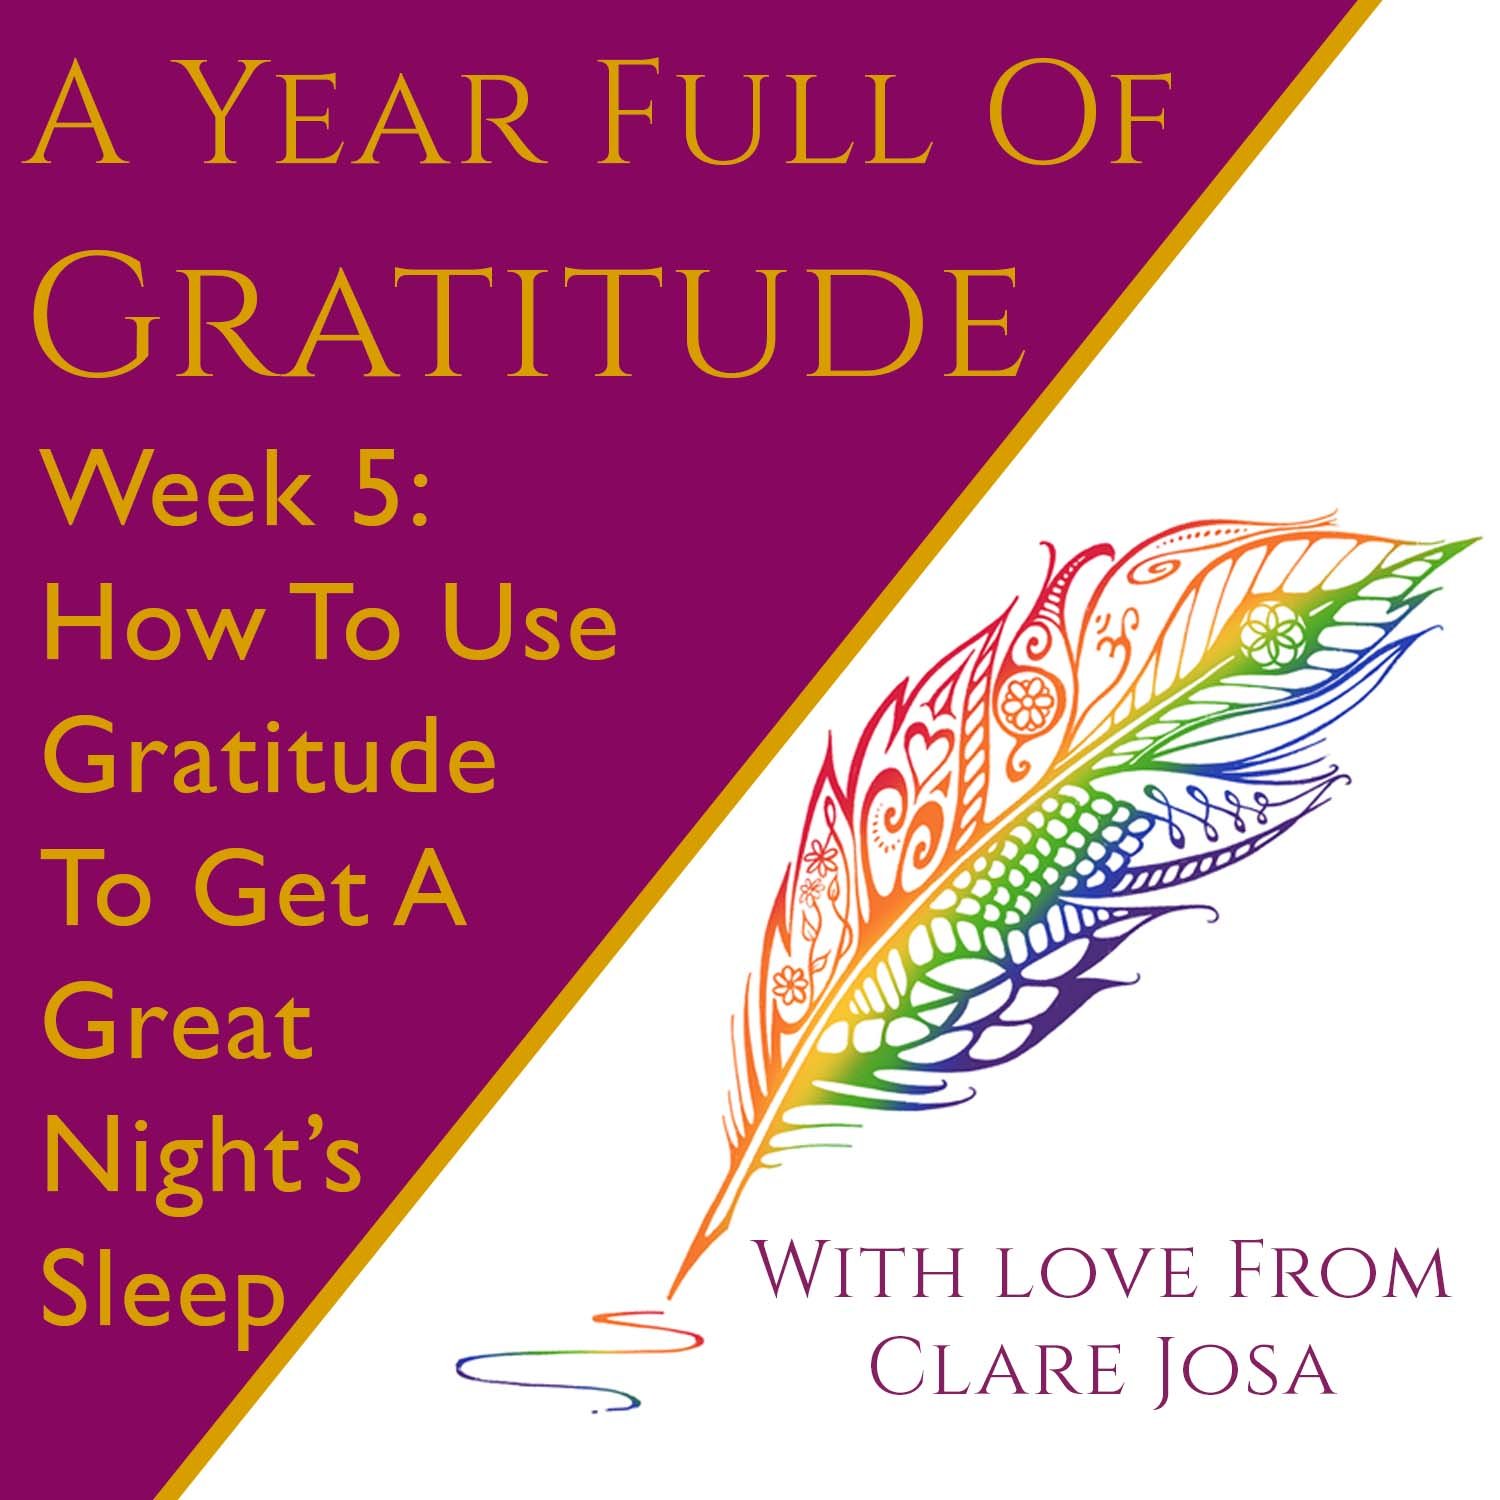 Gratitude: How to use gratitude to get a great night's sleep